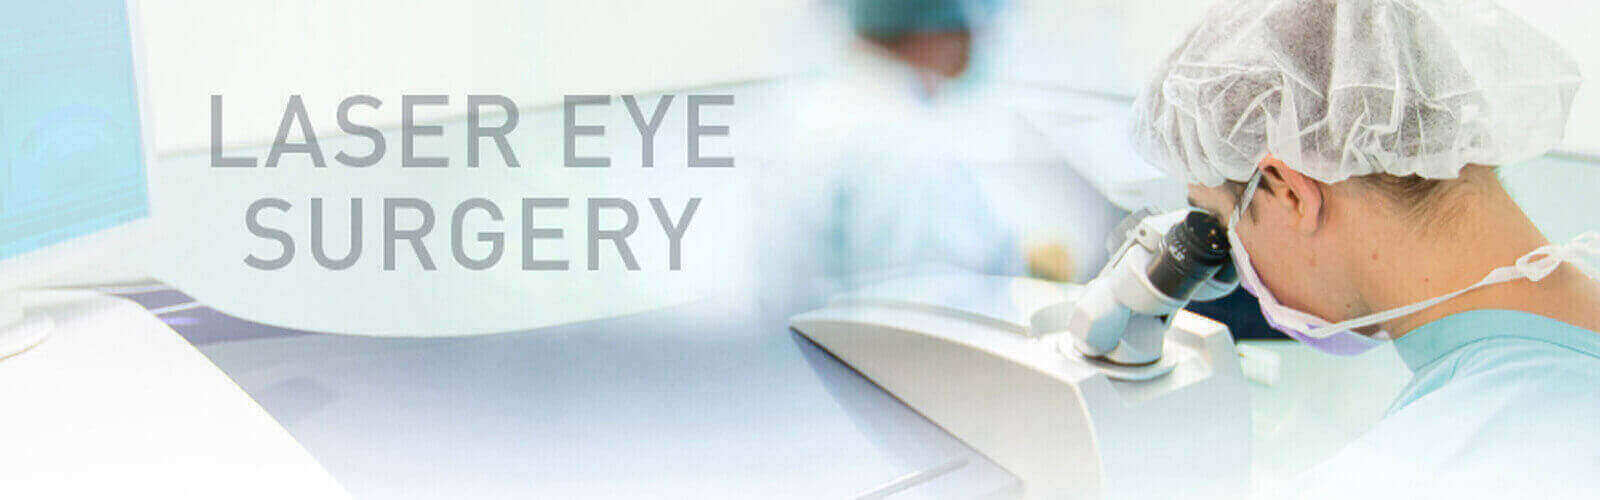 Precautions You Need To Take After Laser Eye Surgery